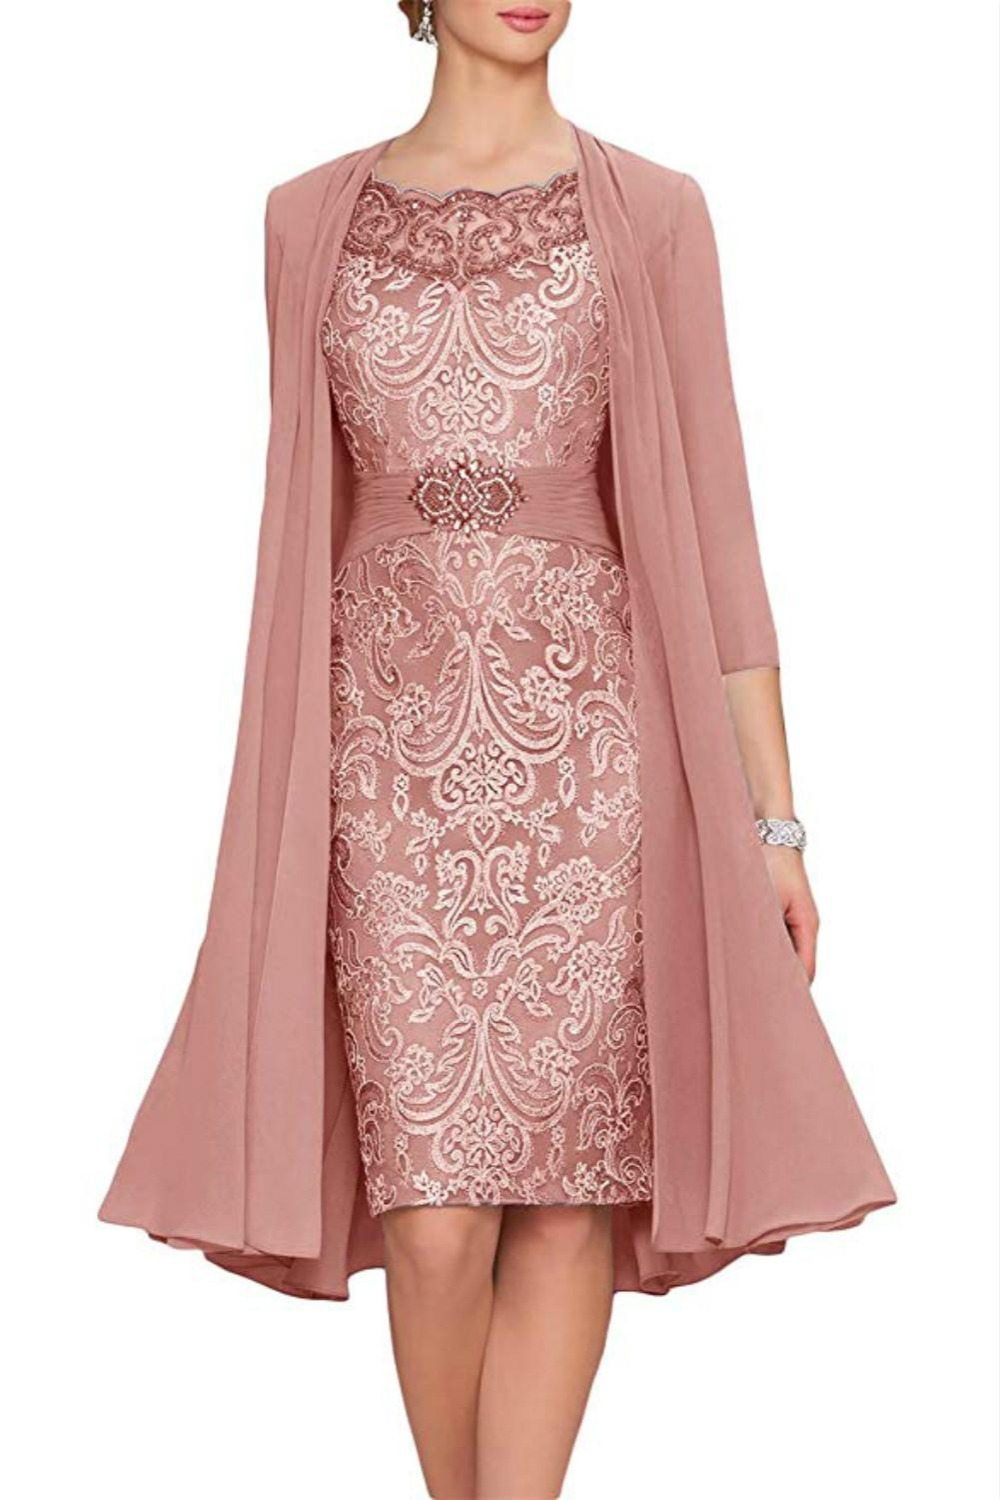 Charming Two Pieces Sheath Lace Vestido Novia Formal Wear Groom Wedding Guest Gown Evening Mother Of Bride Dresses With Jacket